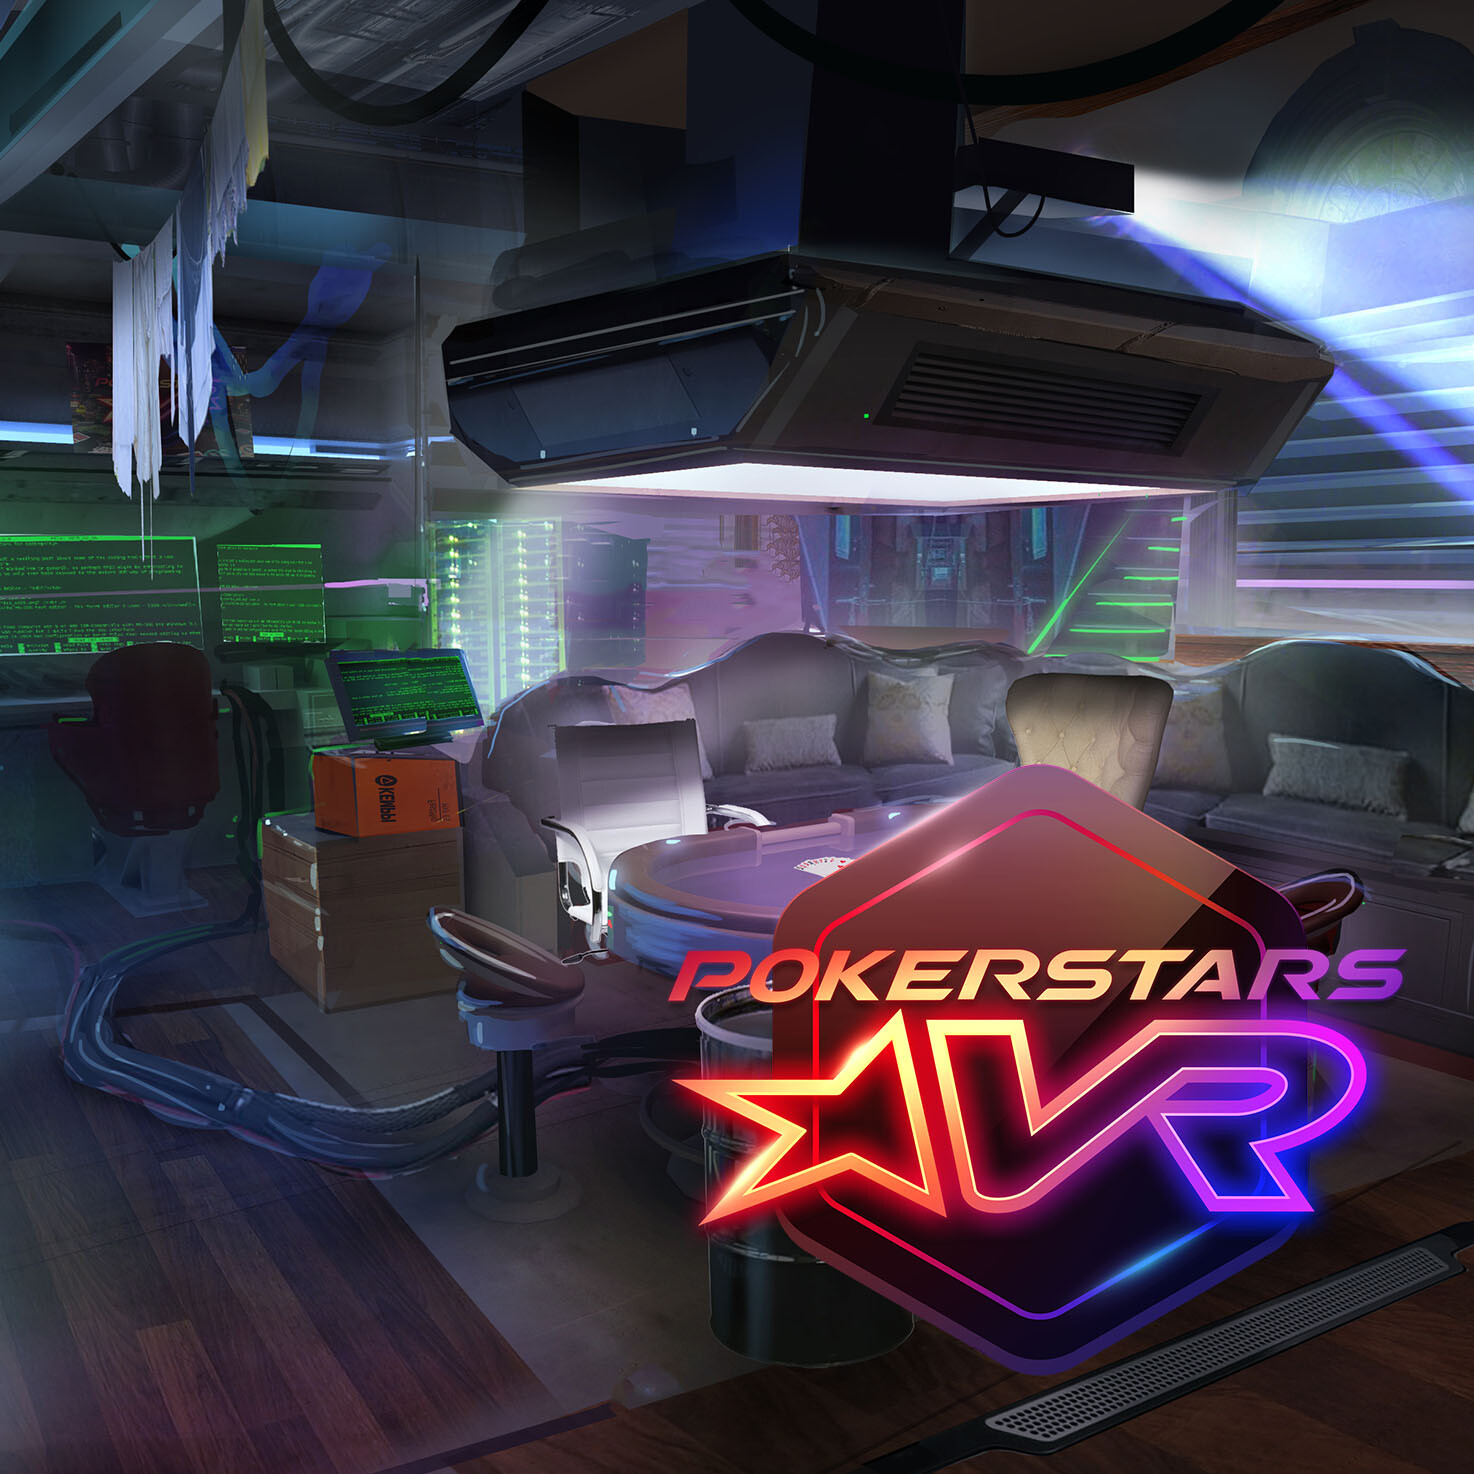 Pokerstars VR Cyber